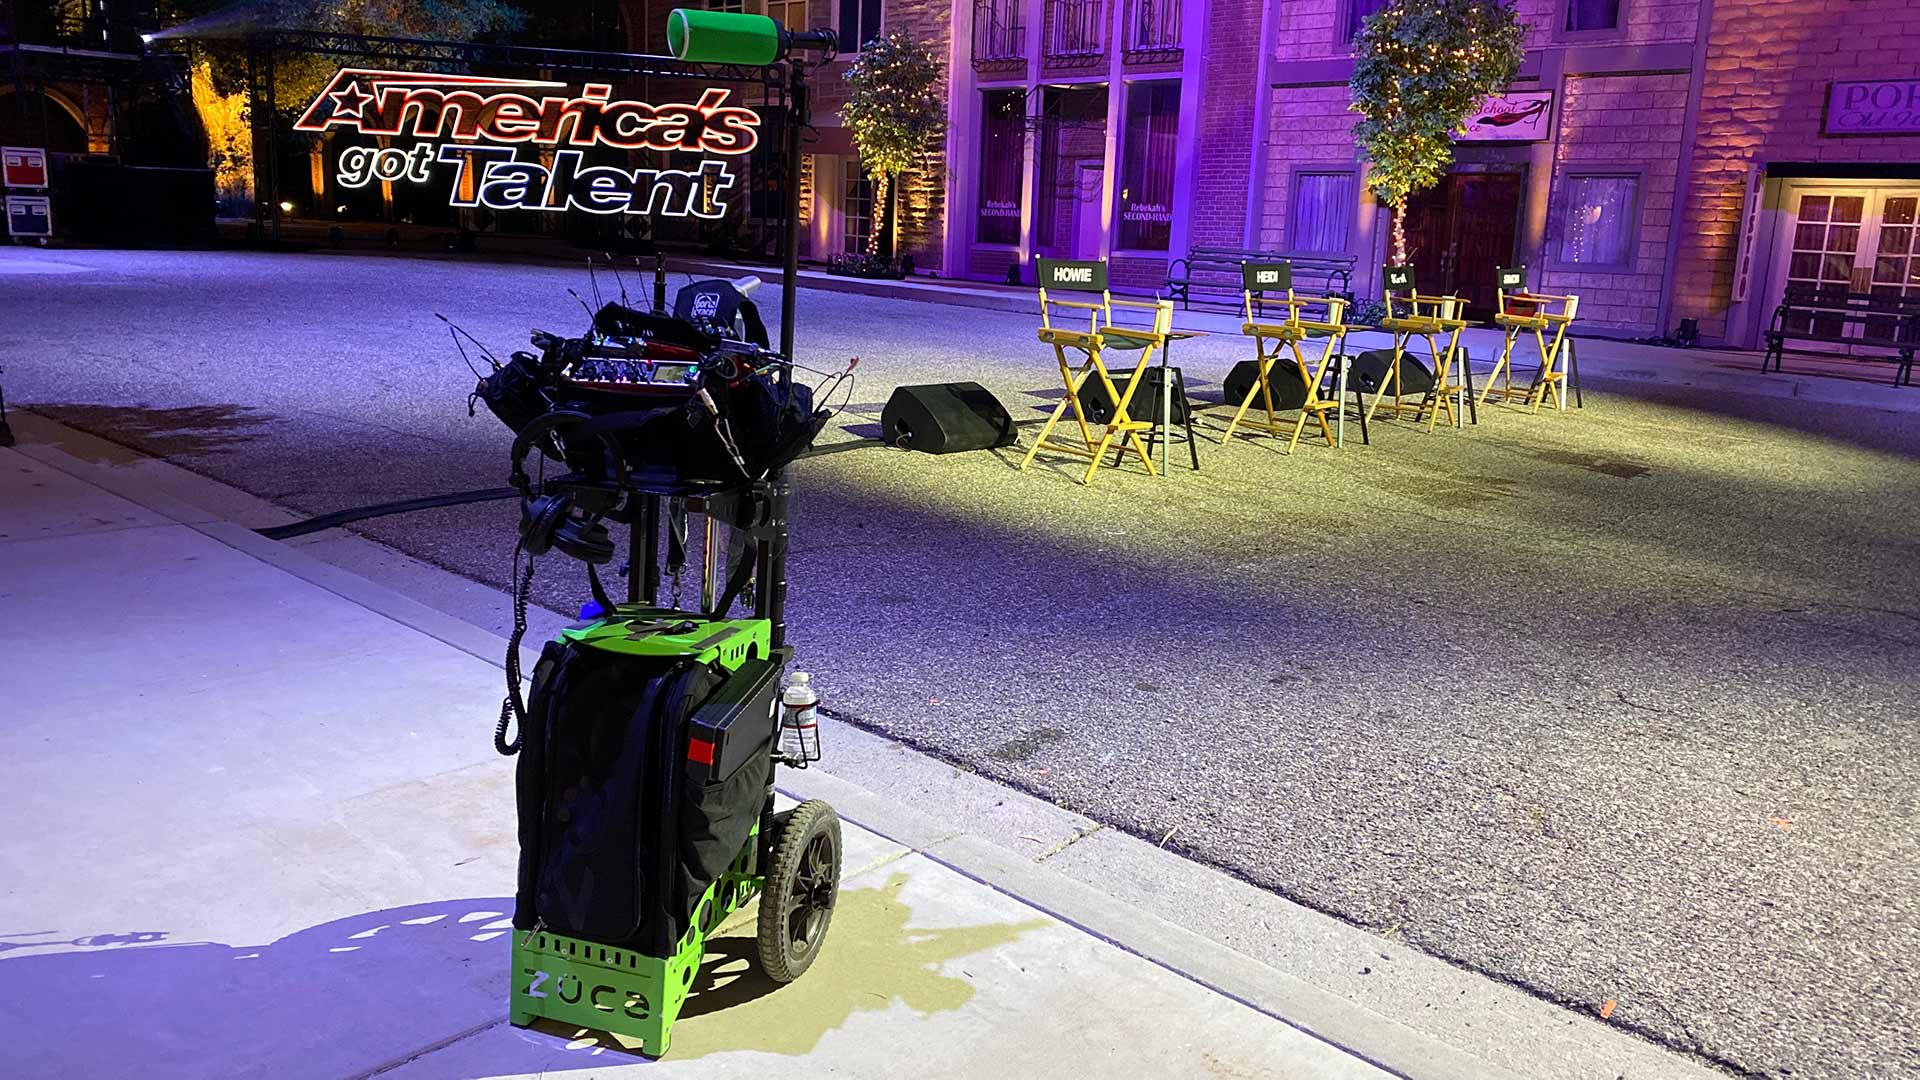 Sound Cart on America's Got Talent 2020